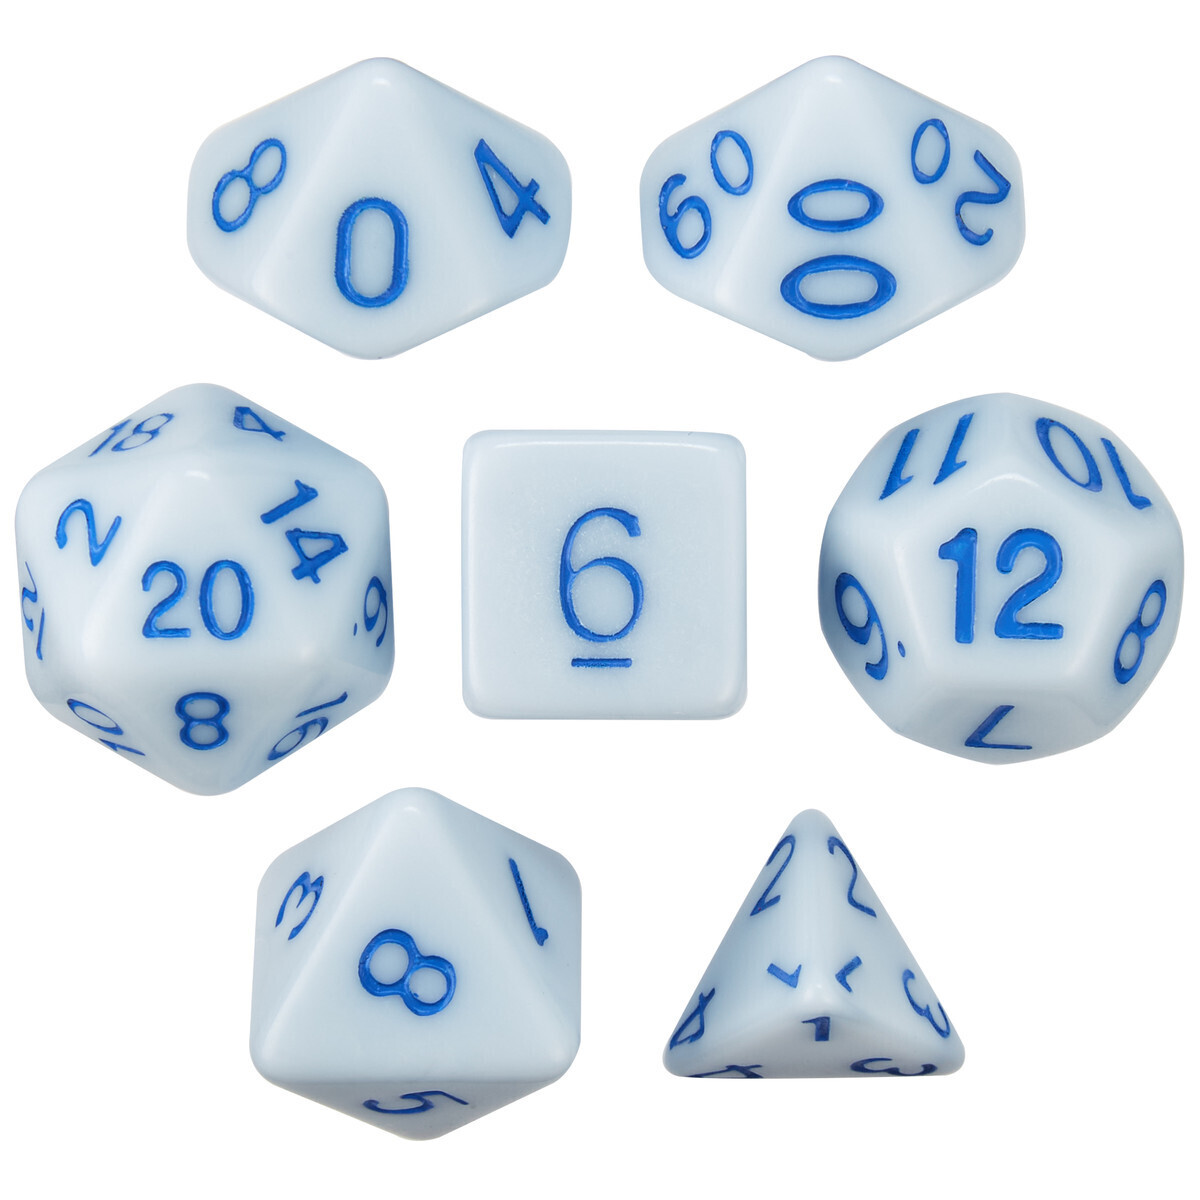 16mm 7 Die Polyhedral Set - Set Of 7 Dice - Frostbourne - Solid Blue With Blue Paint - RPG Tabletop Games Roleplay Cards CCG Board Random Roll Decision